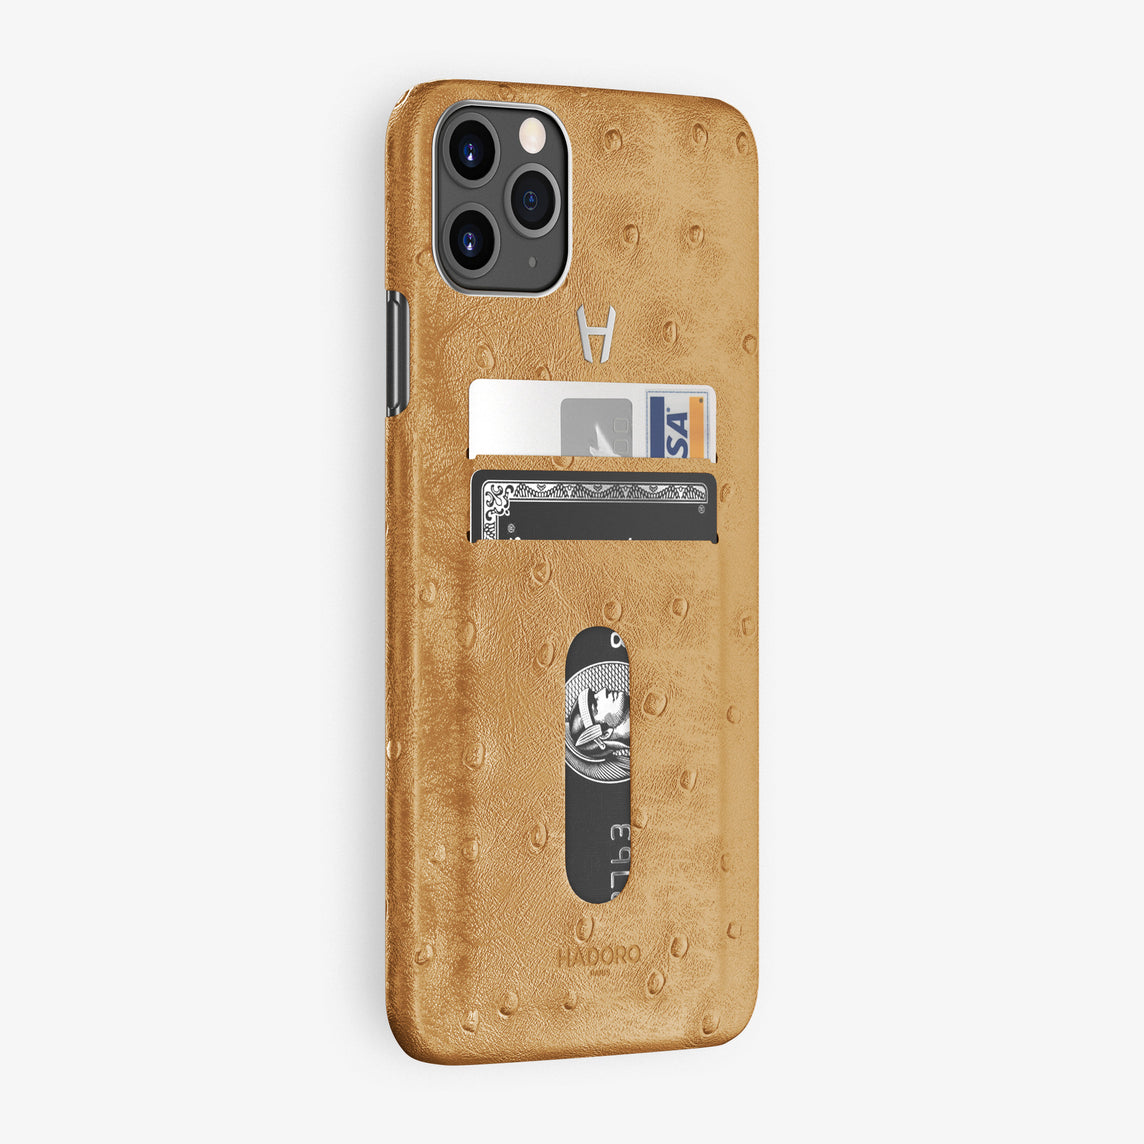 Ostrich Card Holder Case iPhone 11 Pro Max | Chestnut - Stainless Steel